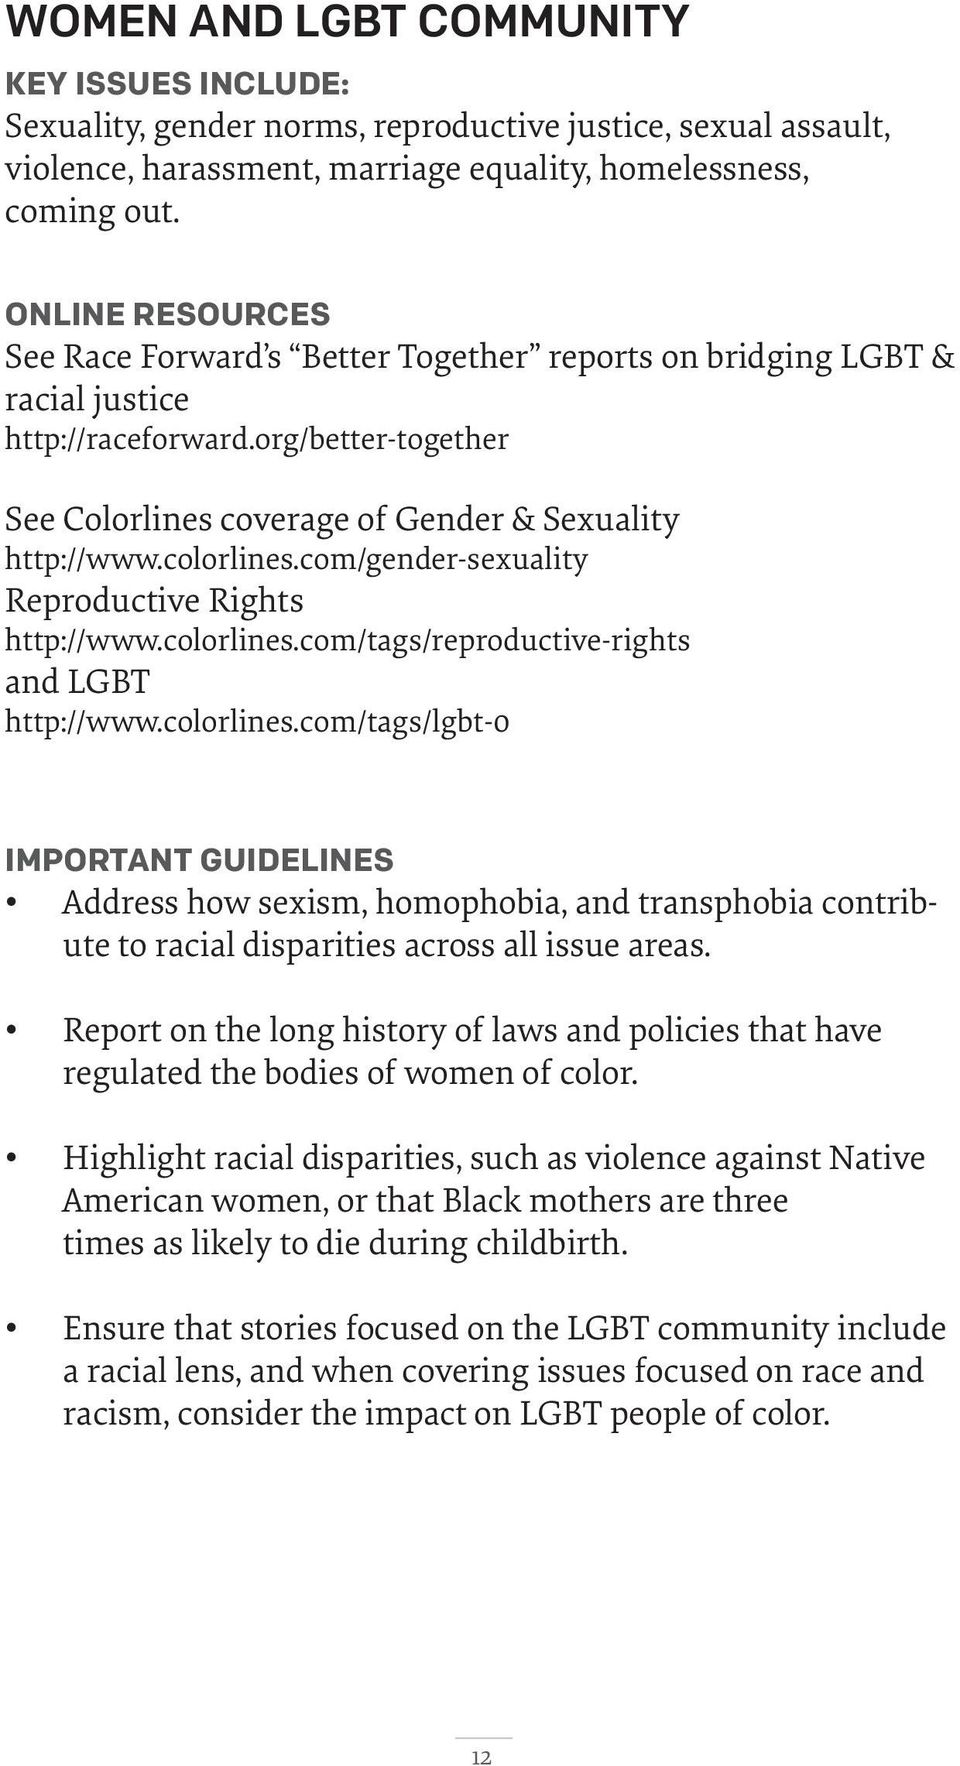 colorlines.com/gender-sexuality Reproductive Rights http://www.colorlines.com/tags/reproductive-rights and LGBT http://www.colorlines.com/tags/lgbt-0 IMPORTANT GUIDELINES Address how sexism, homophobia, and transphobia contribute to racial disparities across all issue areas.